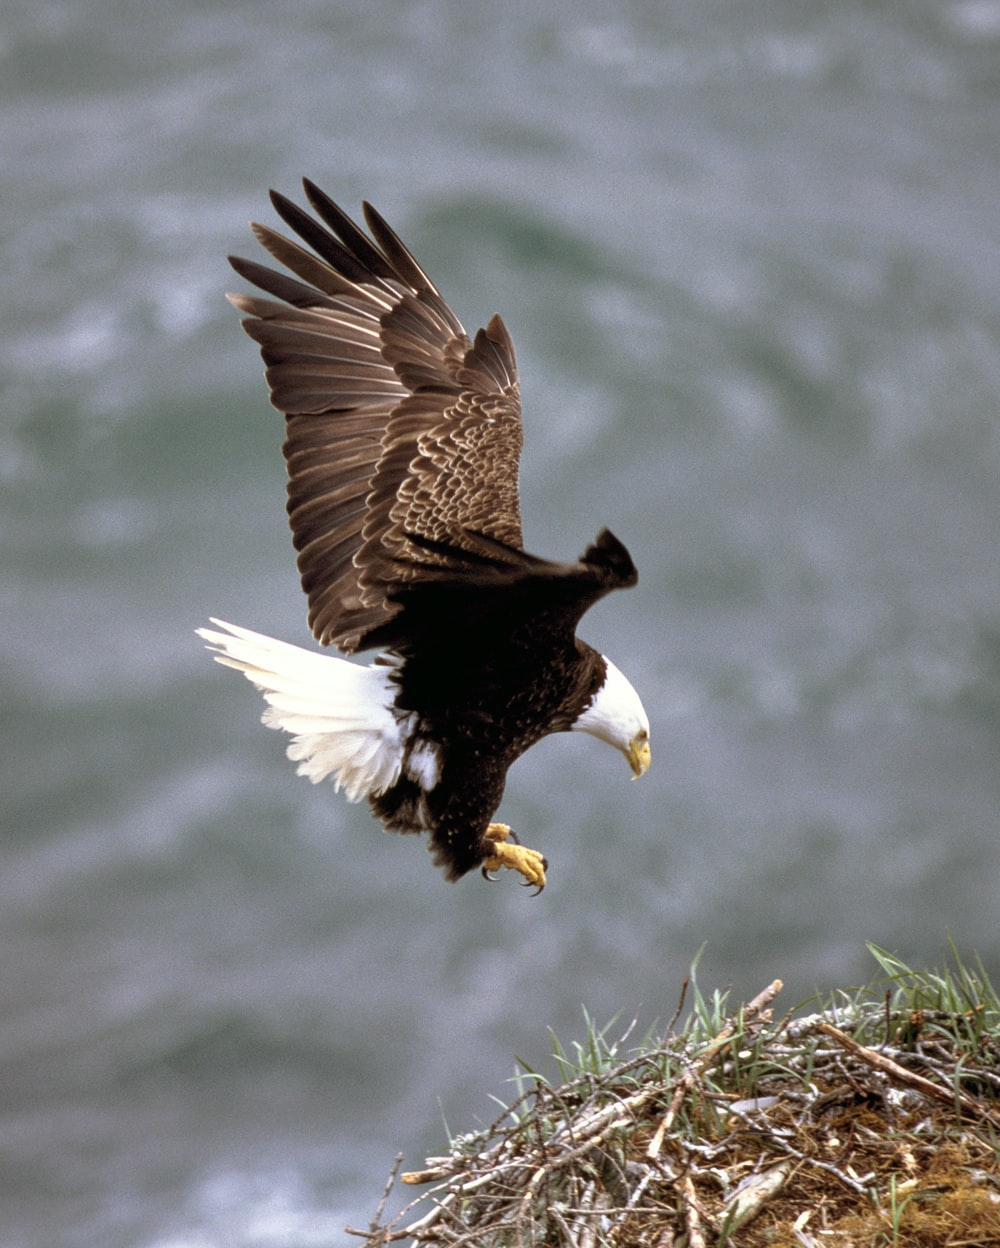 brown and white eagle flying over body of water during daytime